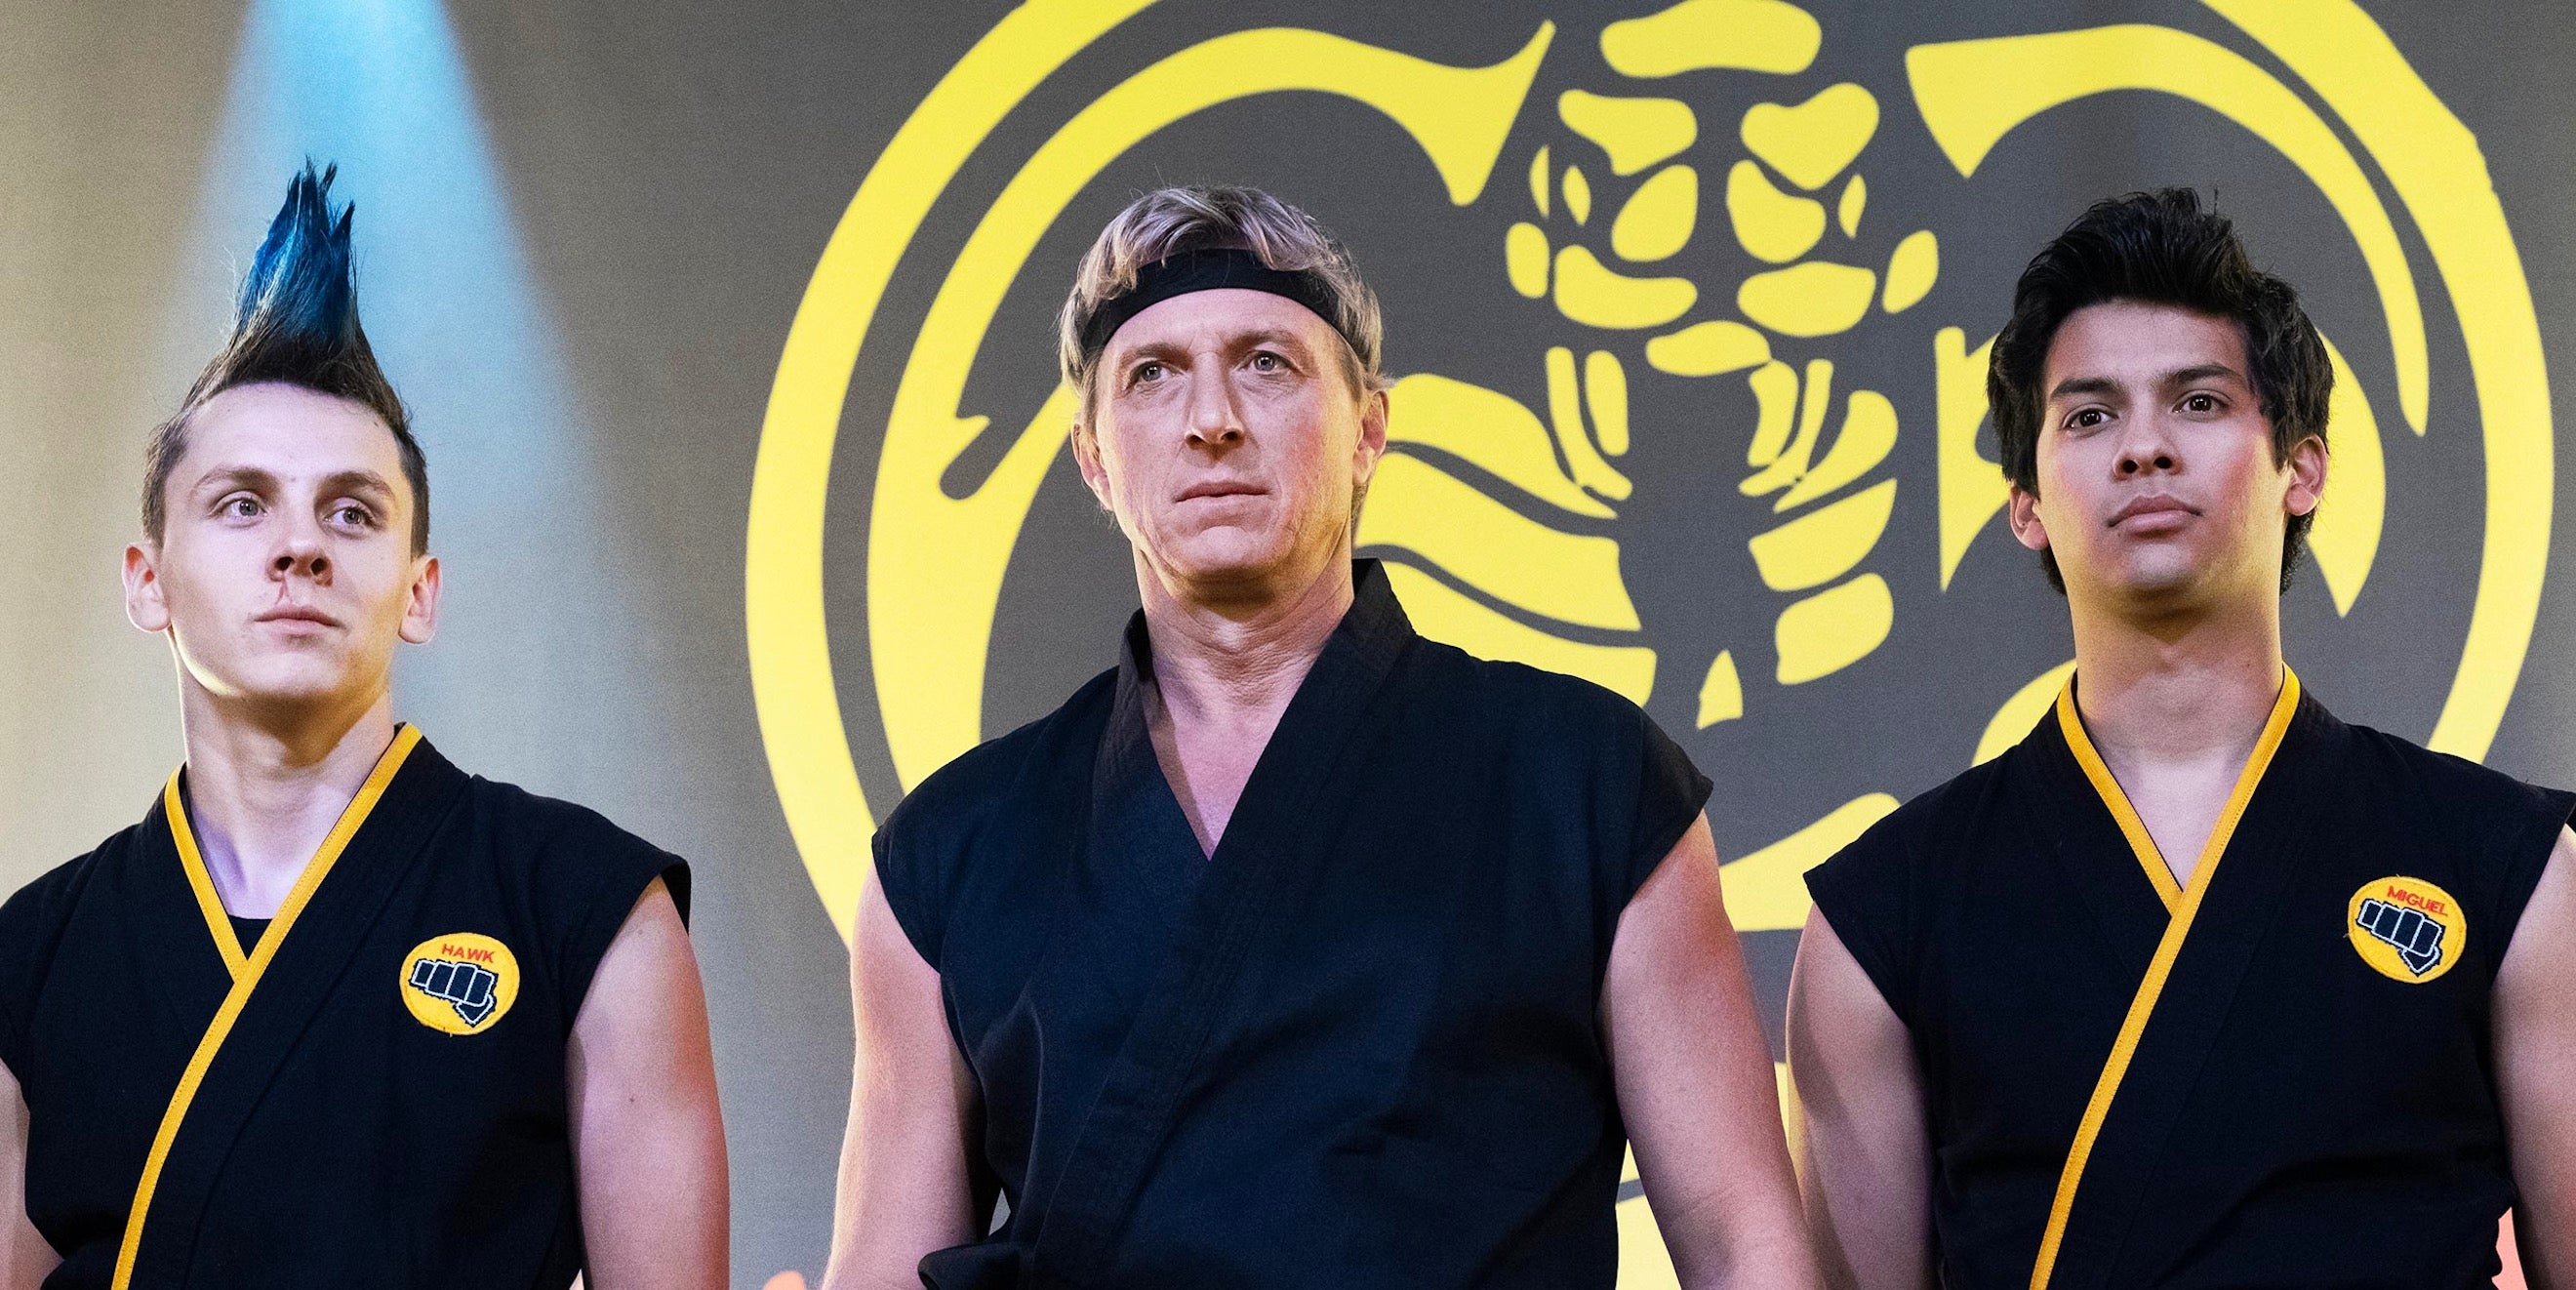 Cobra Kai Continues To Give Us The Karate Kid Nostalgia We Crave In